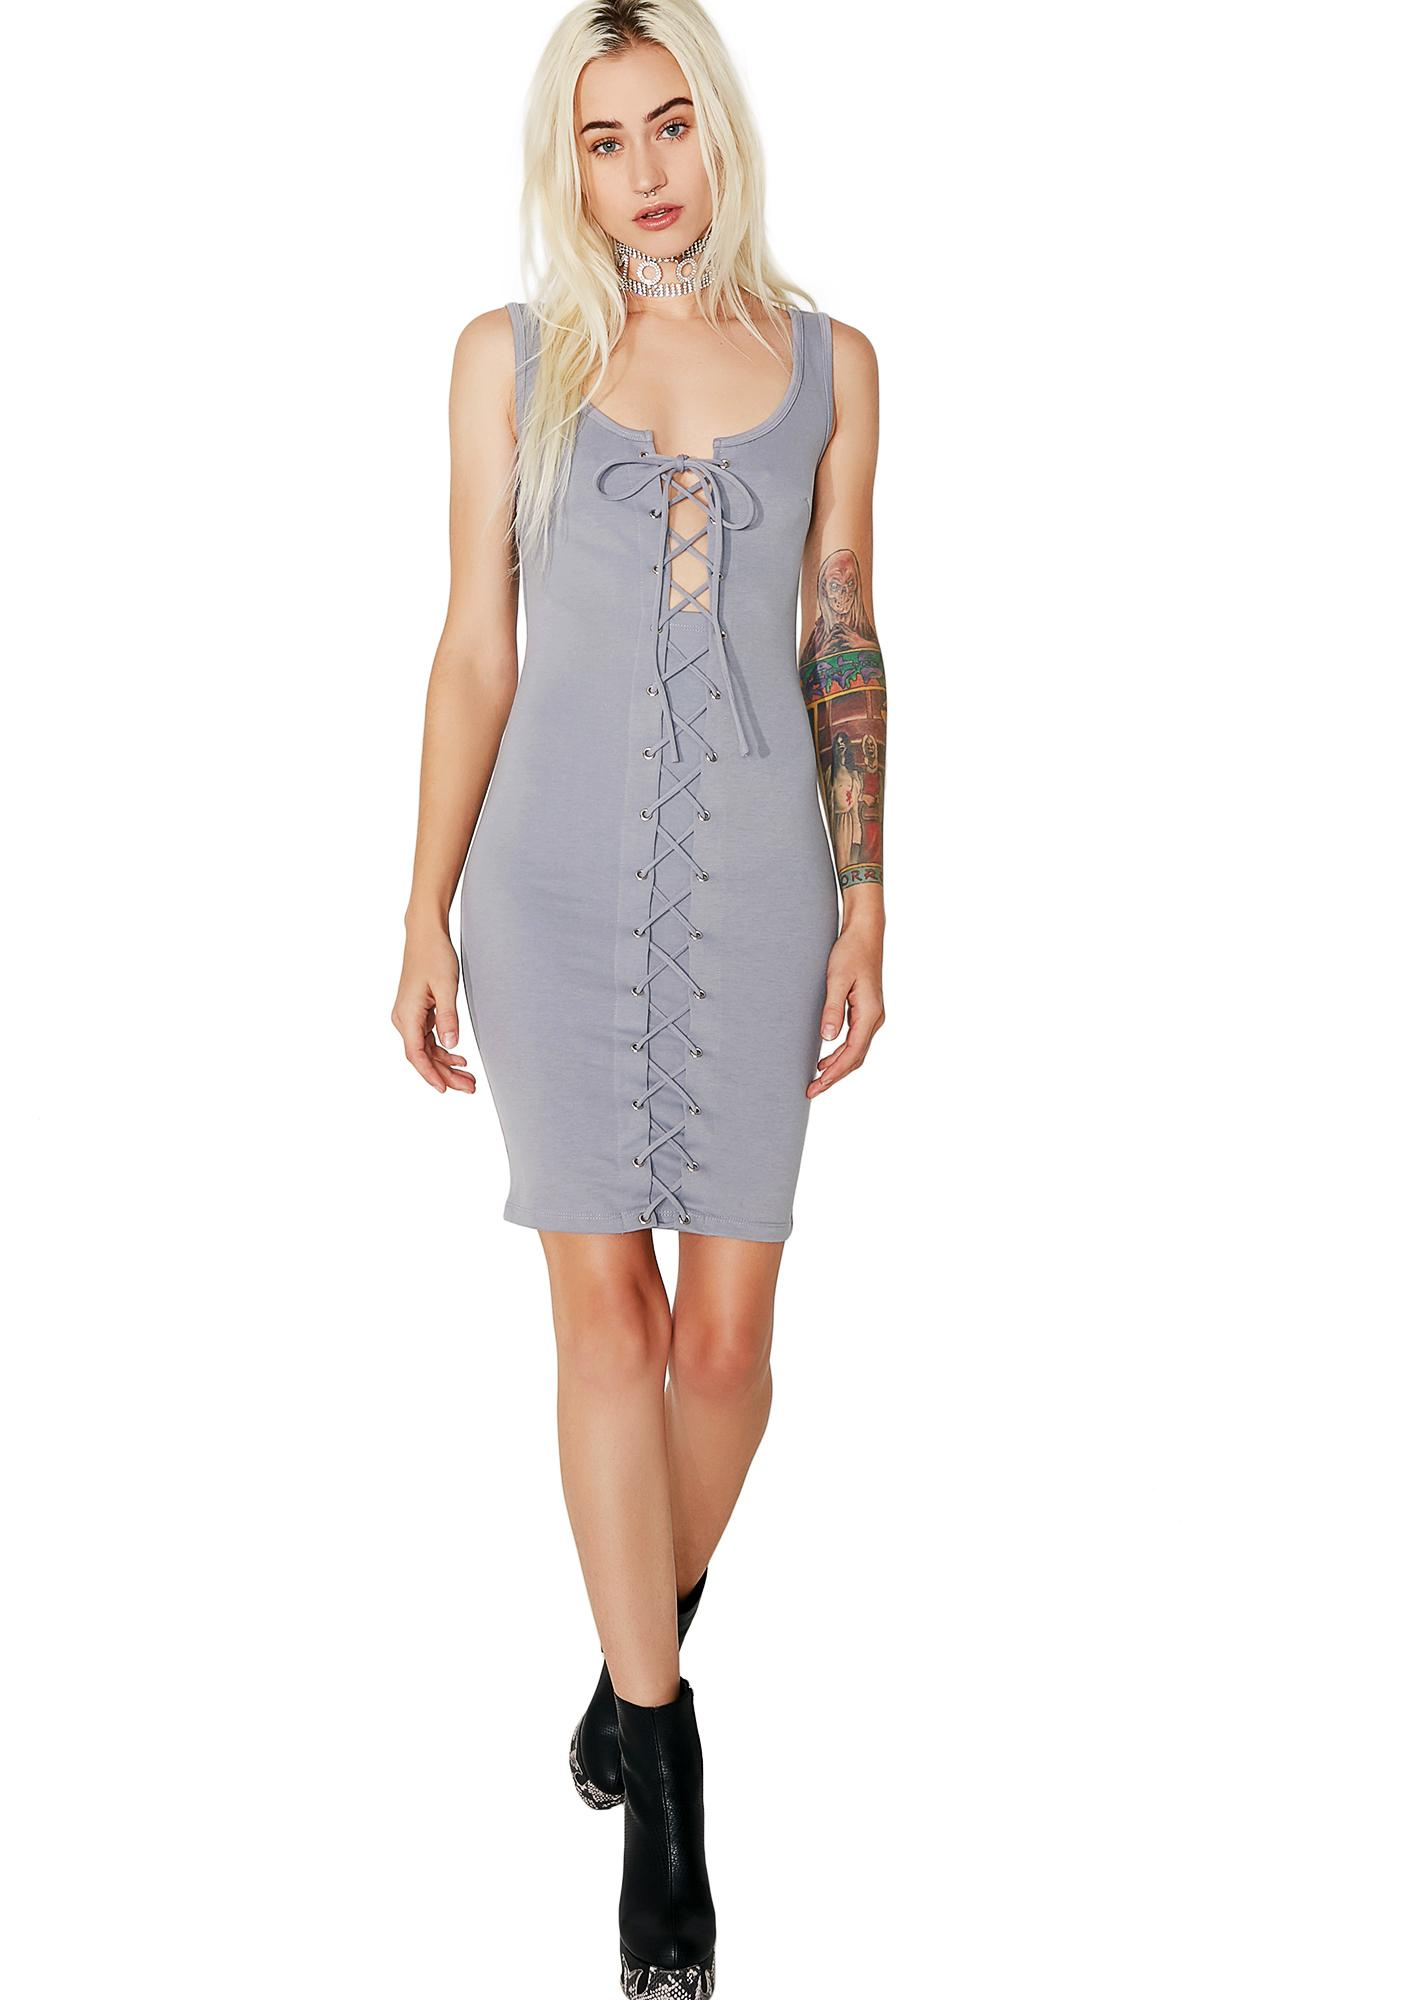 Misty-Eyed Lace-Up Dress